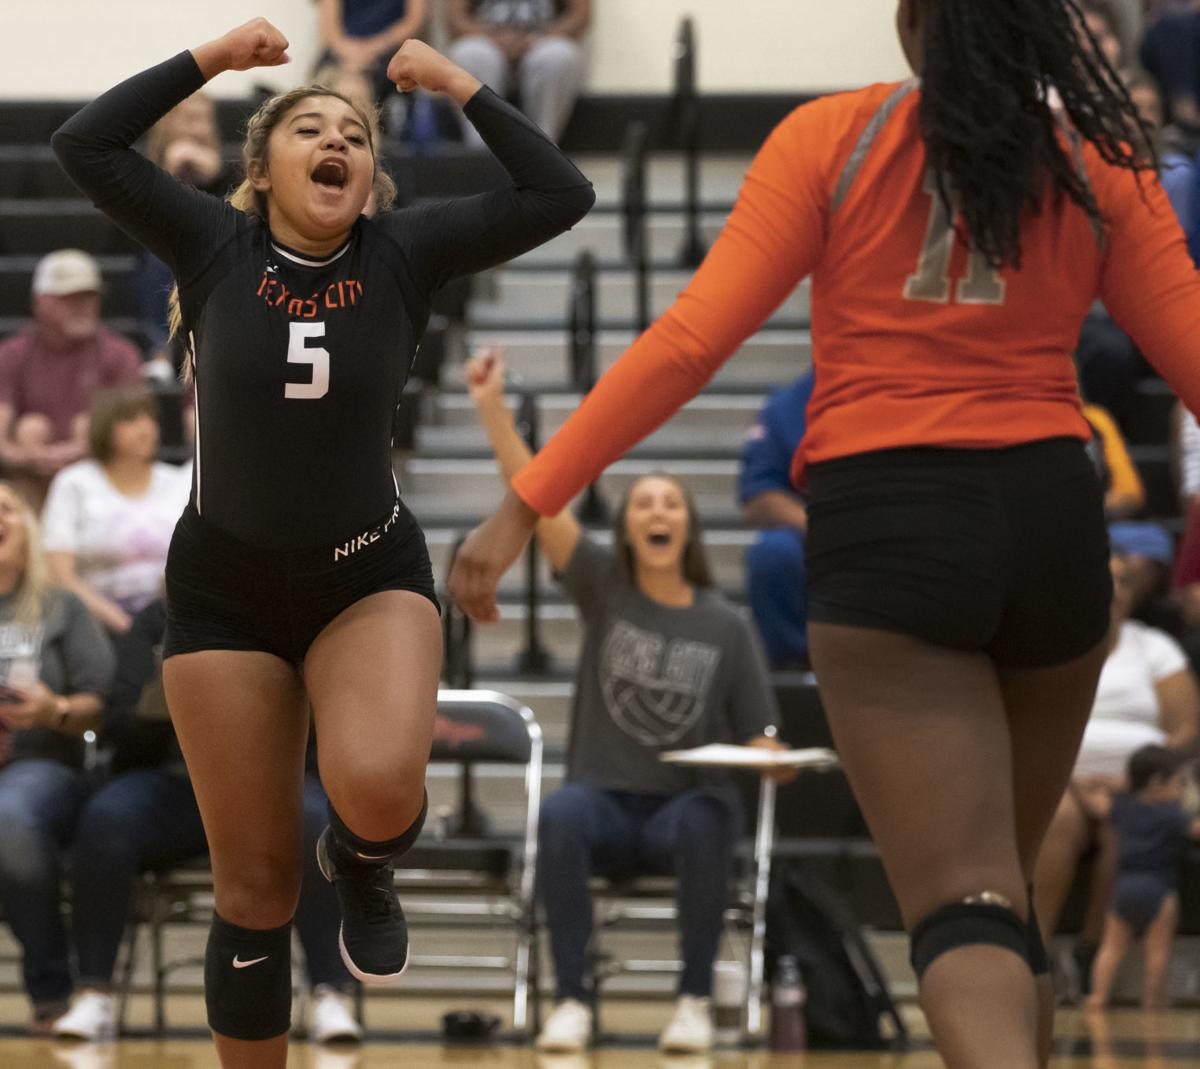 Texas City vs Alvin Volleyball